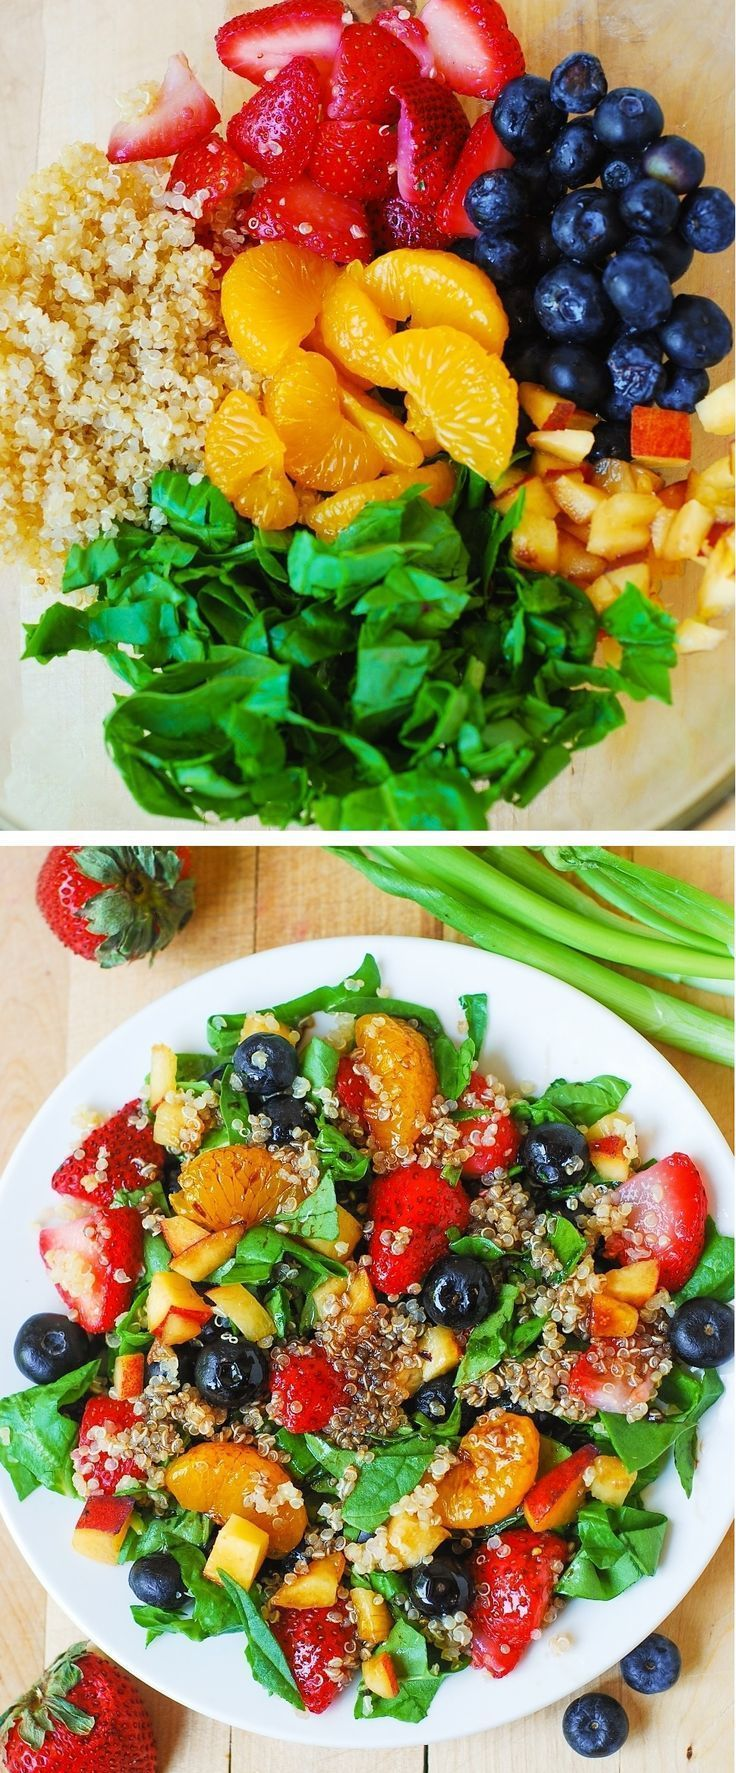 Quinoa salad with spinach, strawberries, blueberries, and peaches, in a homemade Balsamic vinaigrette dressing.  This recipe is vegetarian, vegan, gluten free, healthy, and just plainly delicious!